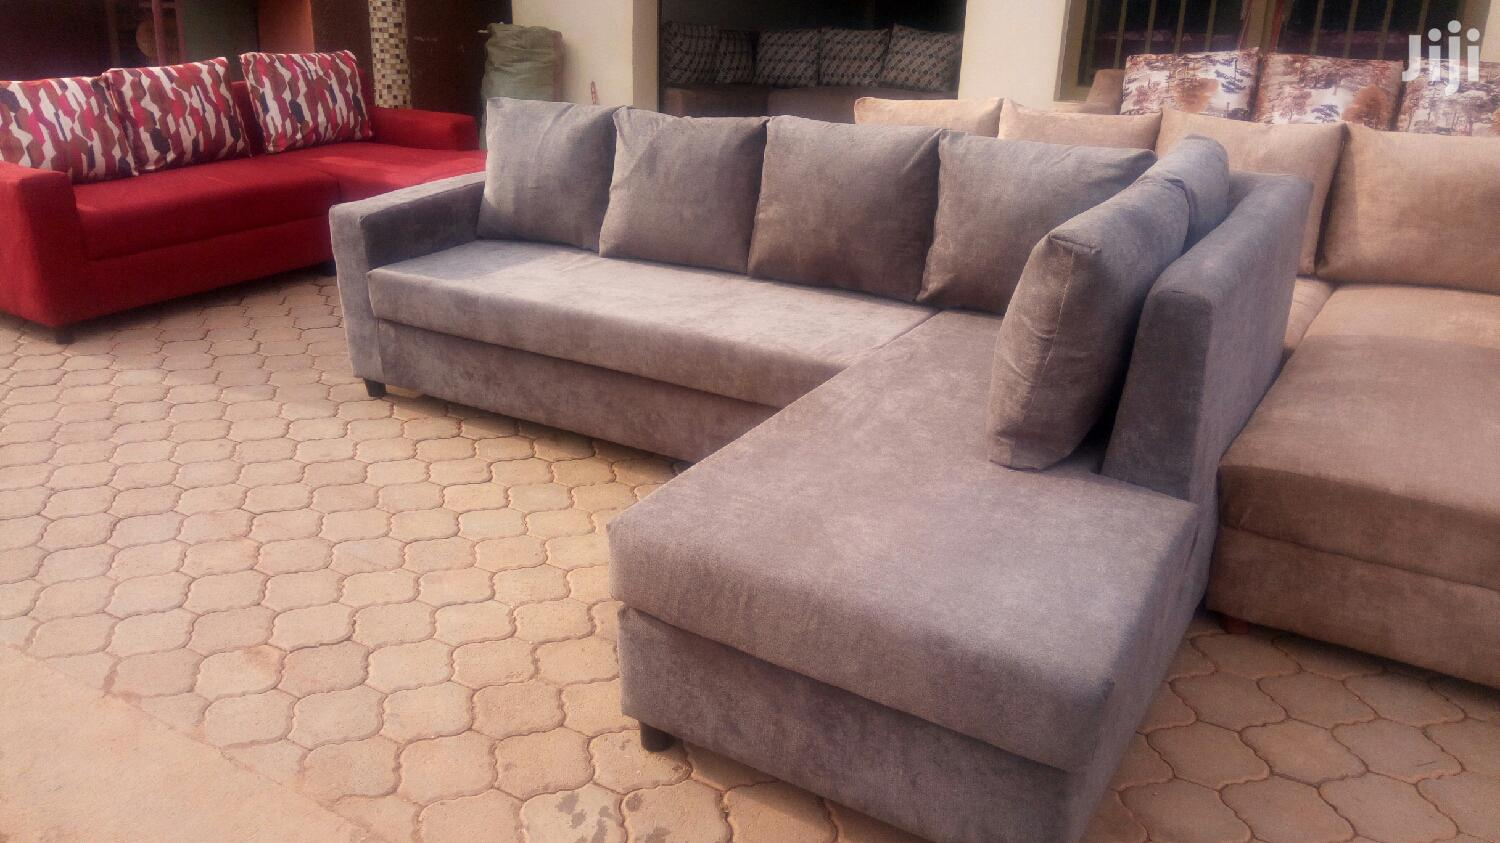 L Shape Sofa, Neat and Comfortable. Place You Order Today!